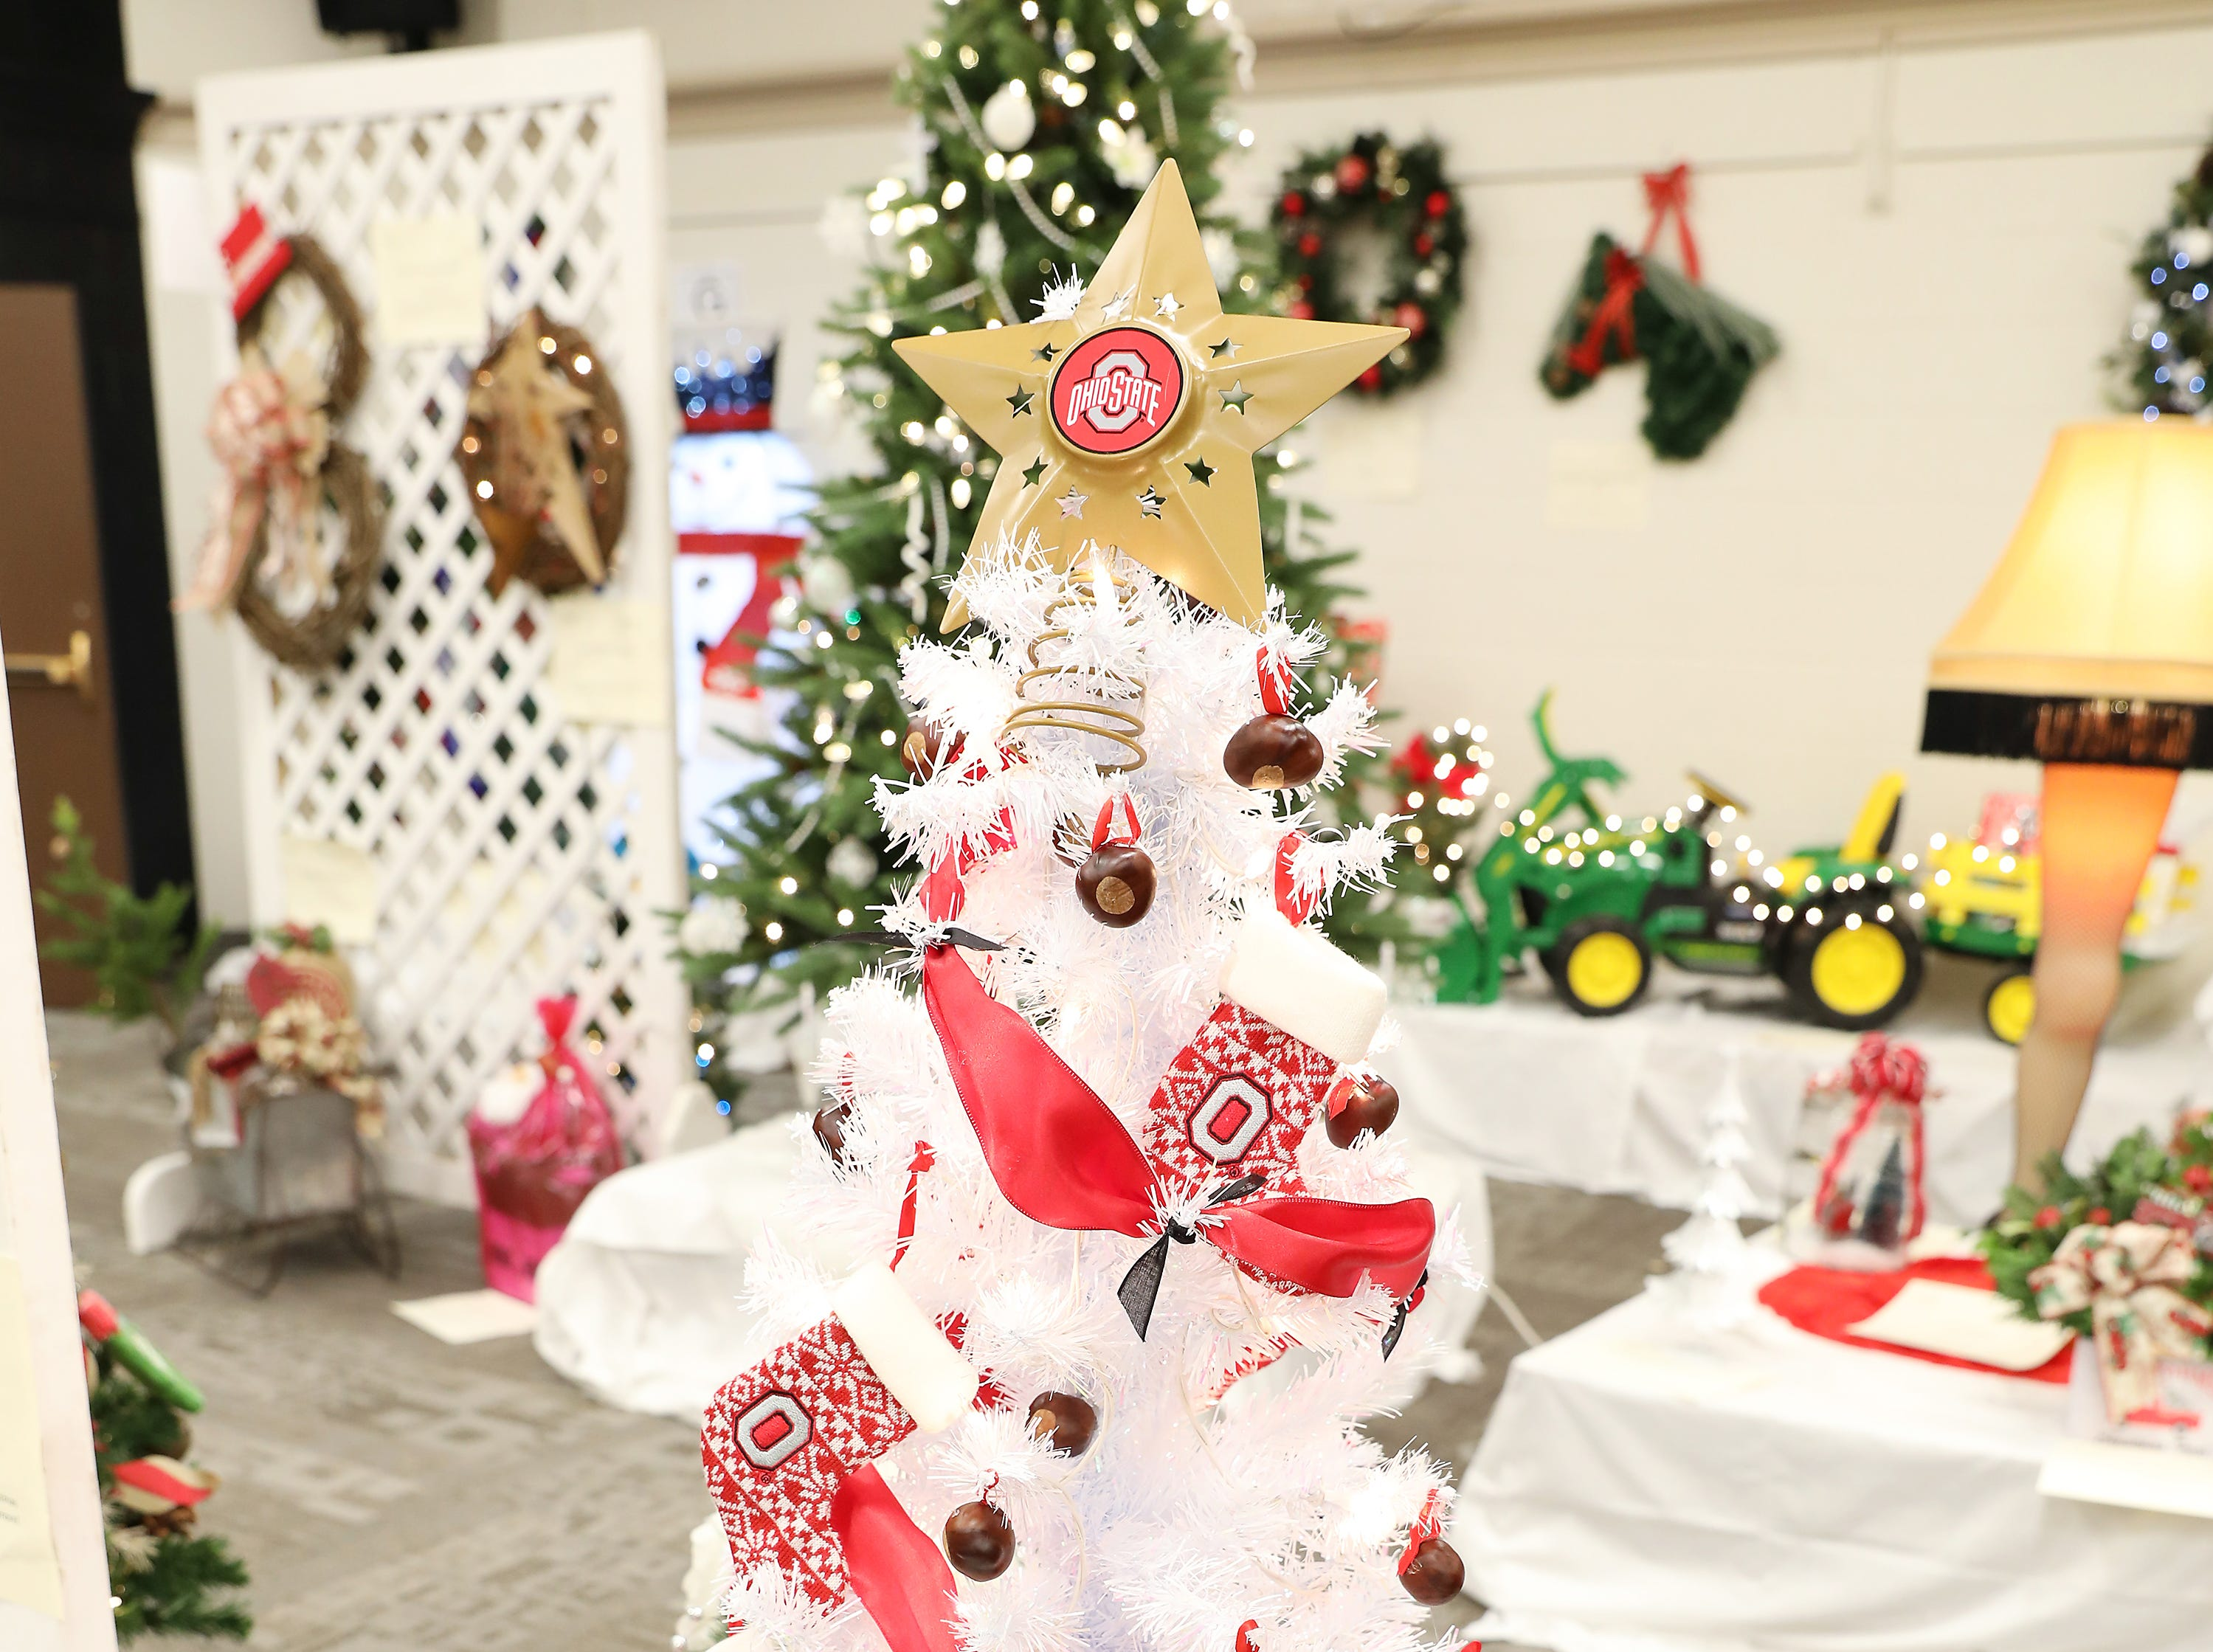 85	12:30 PM	Lepi & Associates Real Estate Services	Medium Tree	An Ohio State Buckeye Christmas	Scarlet and grey buckeye tree with buckeye ornaments, buckeye tree skirt and an Ohio State Star topper		$100 gift card to Adornettos.